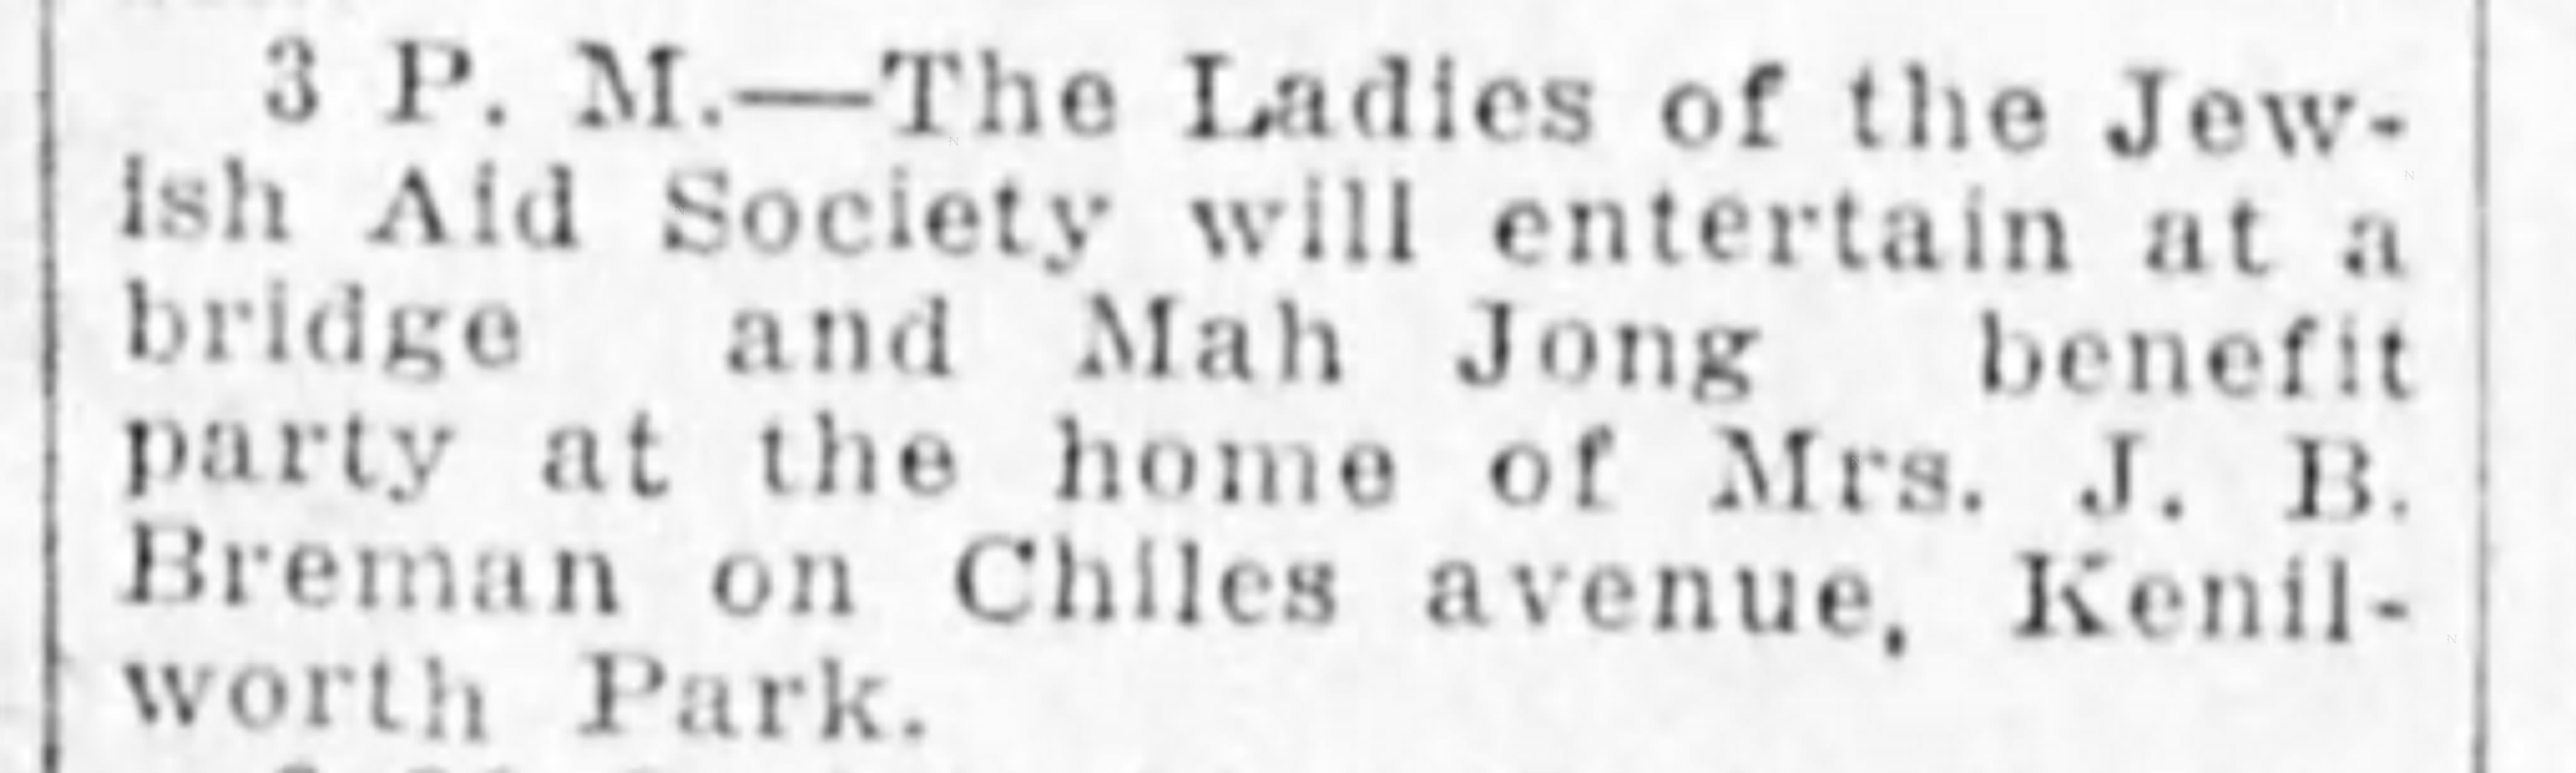 17-chiles-breman-jewish-aid-mah-jong-asheville_citizen_times_fri__apr_16__1926_